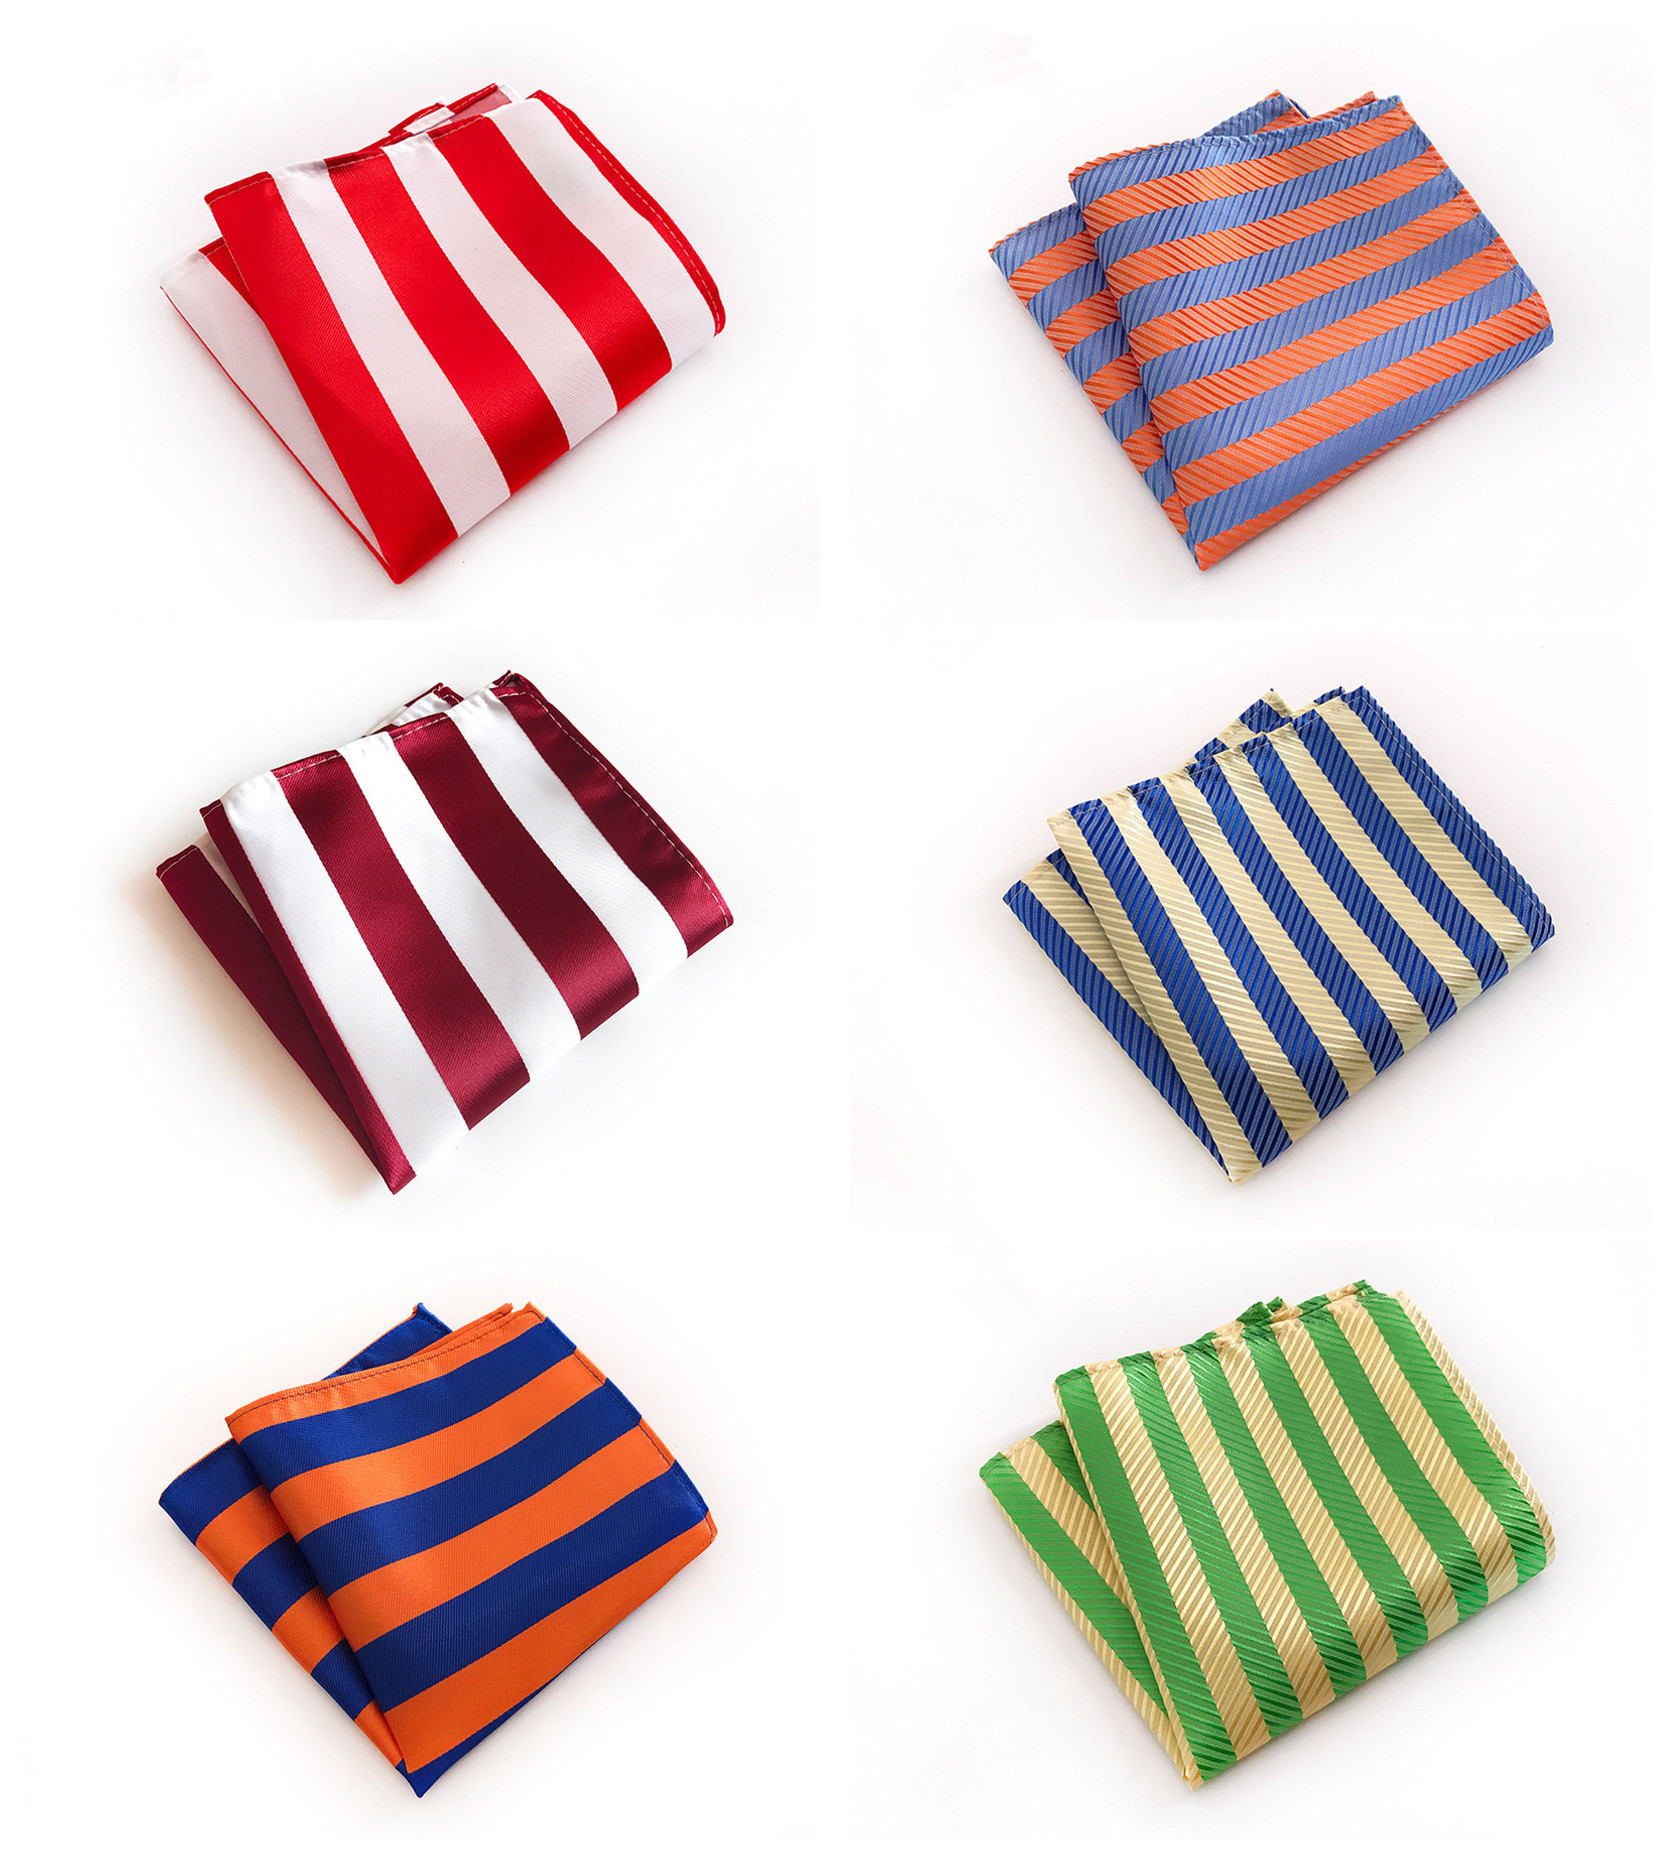 Men's Business Dress Multicolor Striped Pocket Towel Fashion Design Quality Explosion Models 25x25cm Polyester Pocket Towel